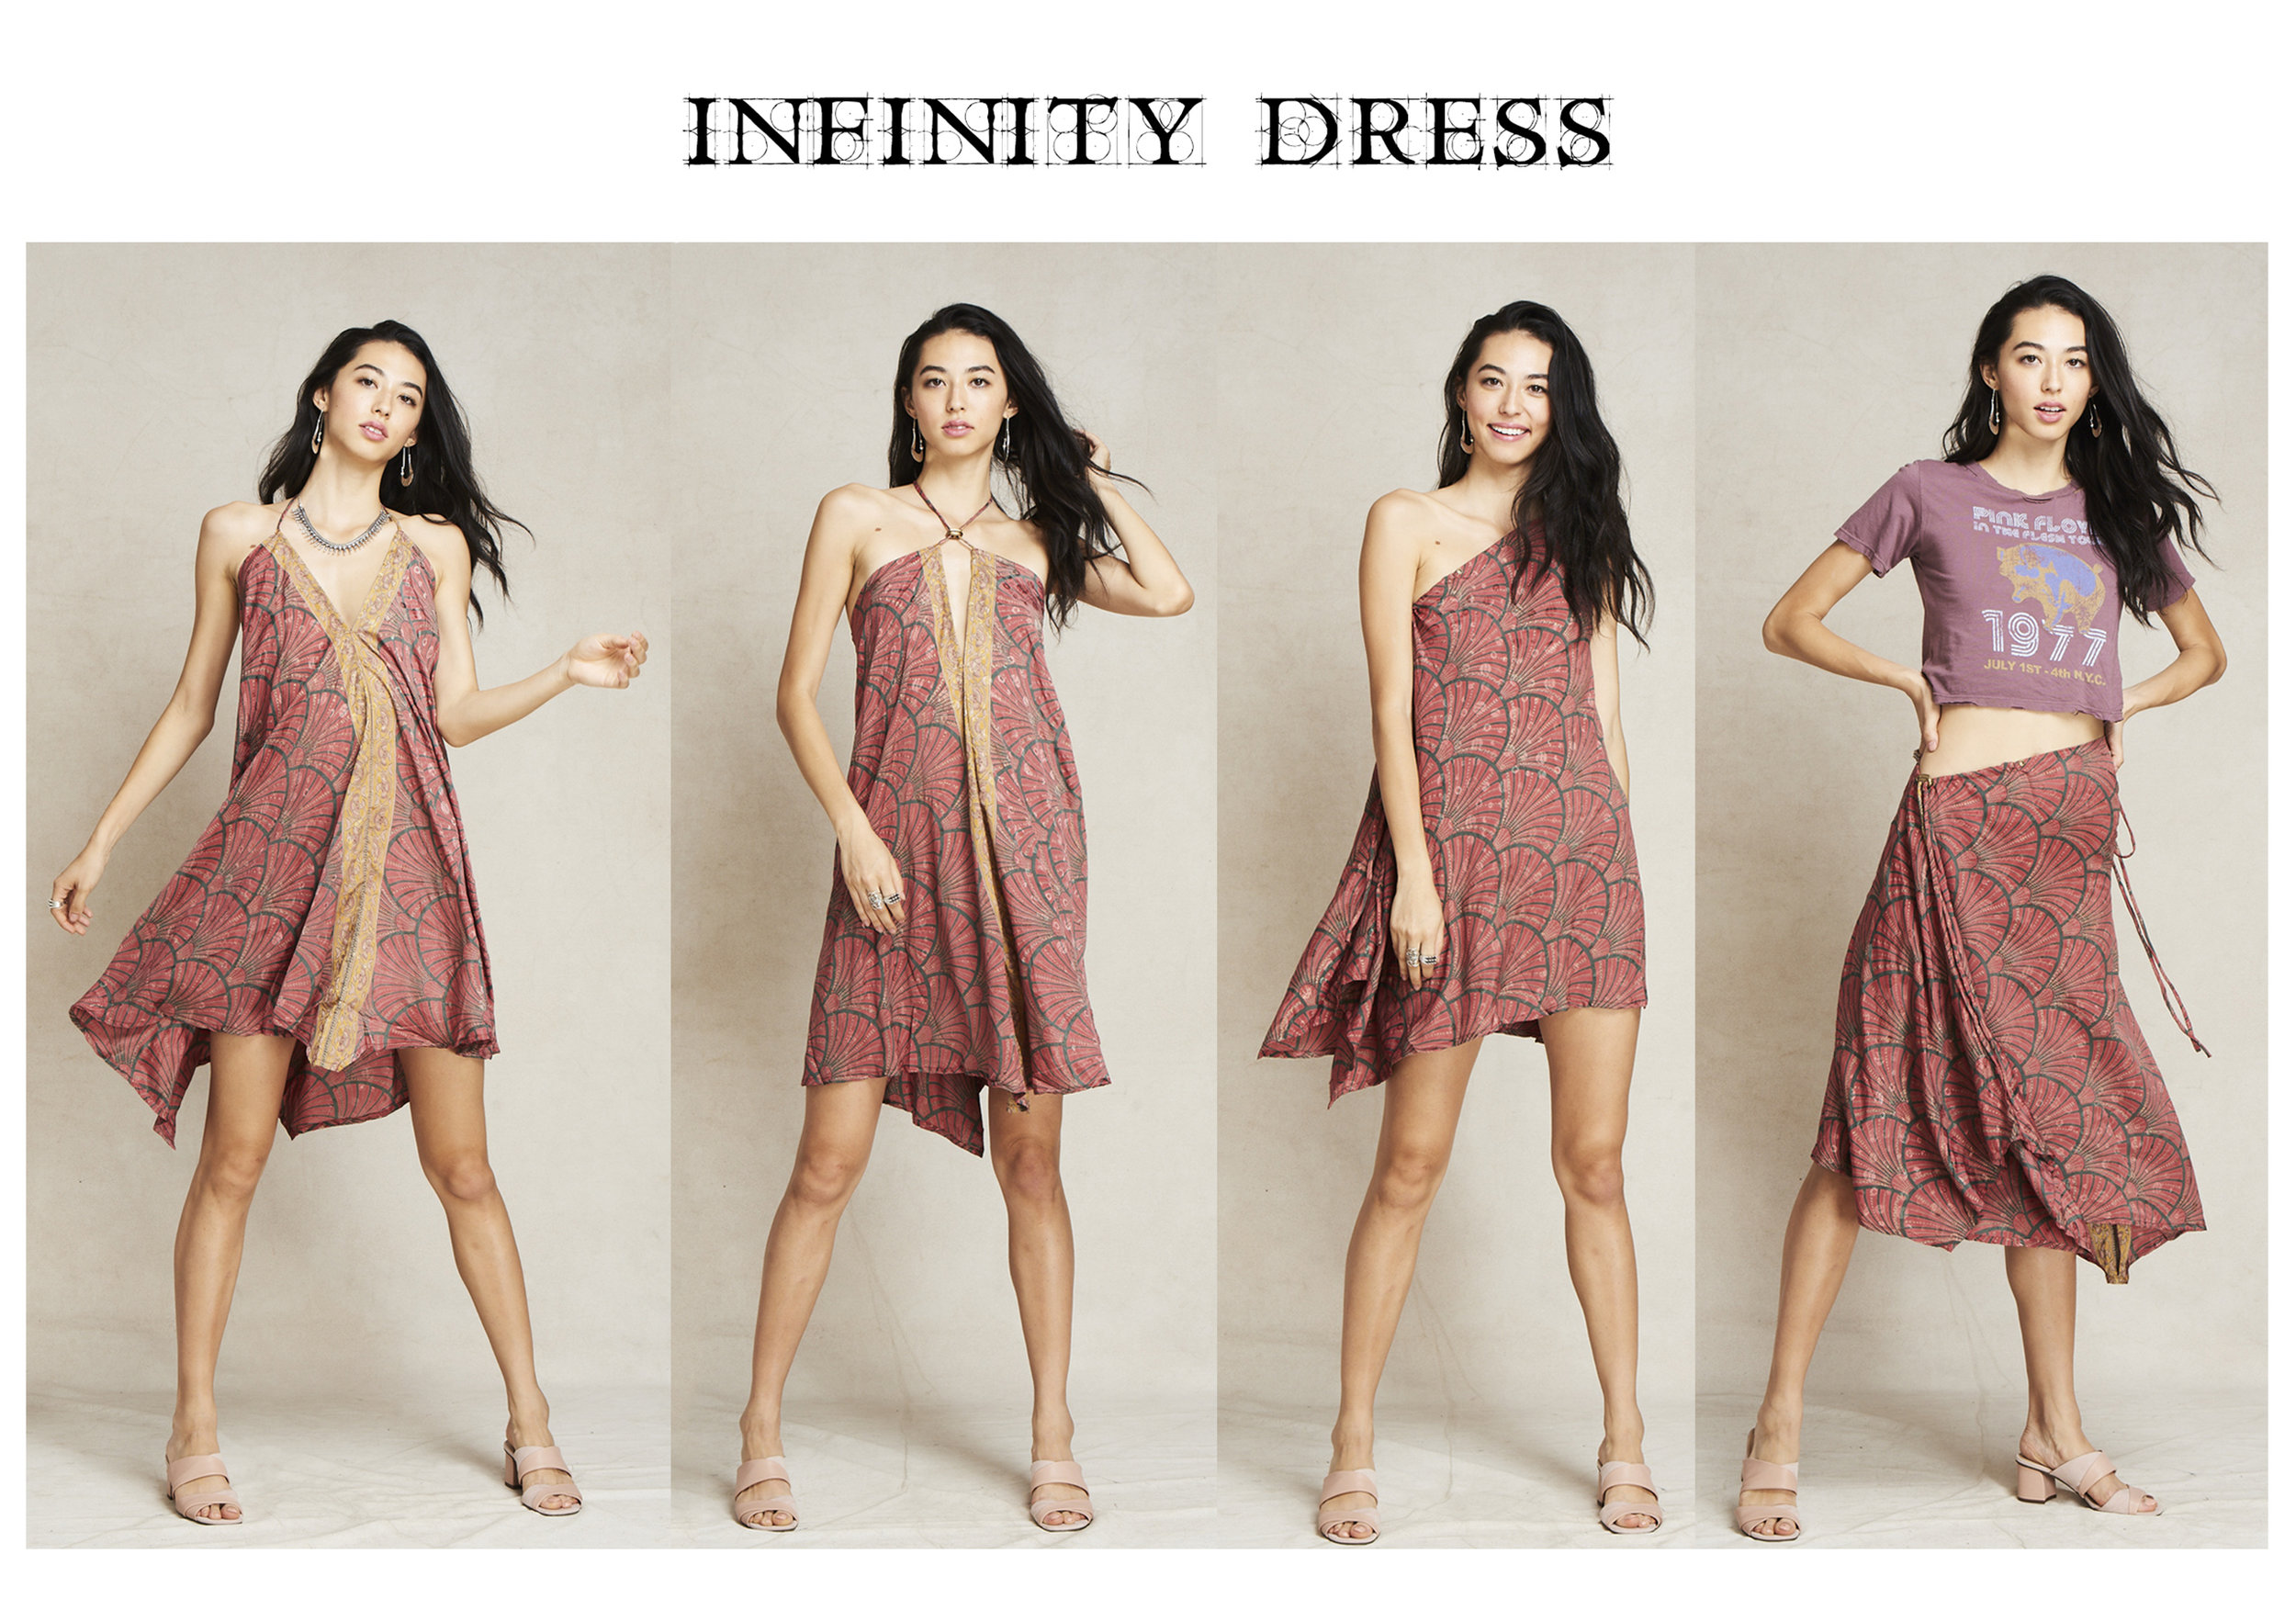 *Infinity Dress is the multi-use dress, photographed by Fumie Hoppe